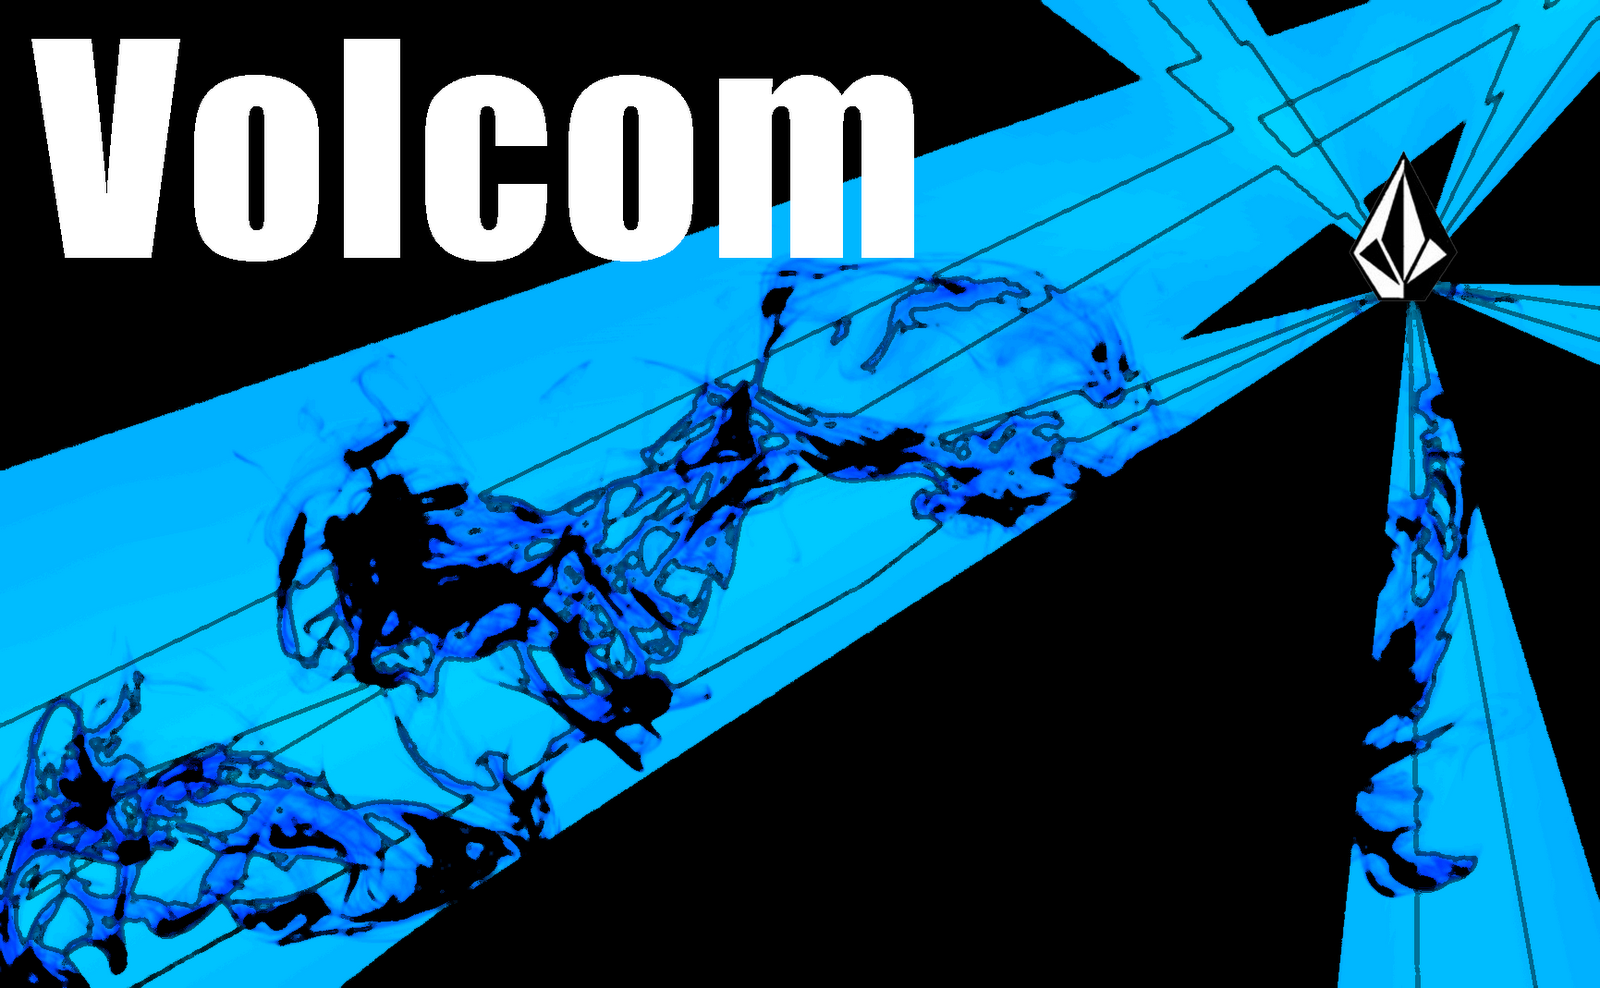 volcom wallpaper wallpapersafari